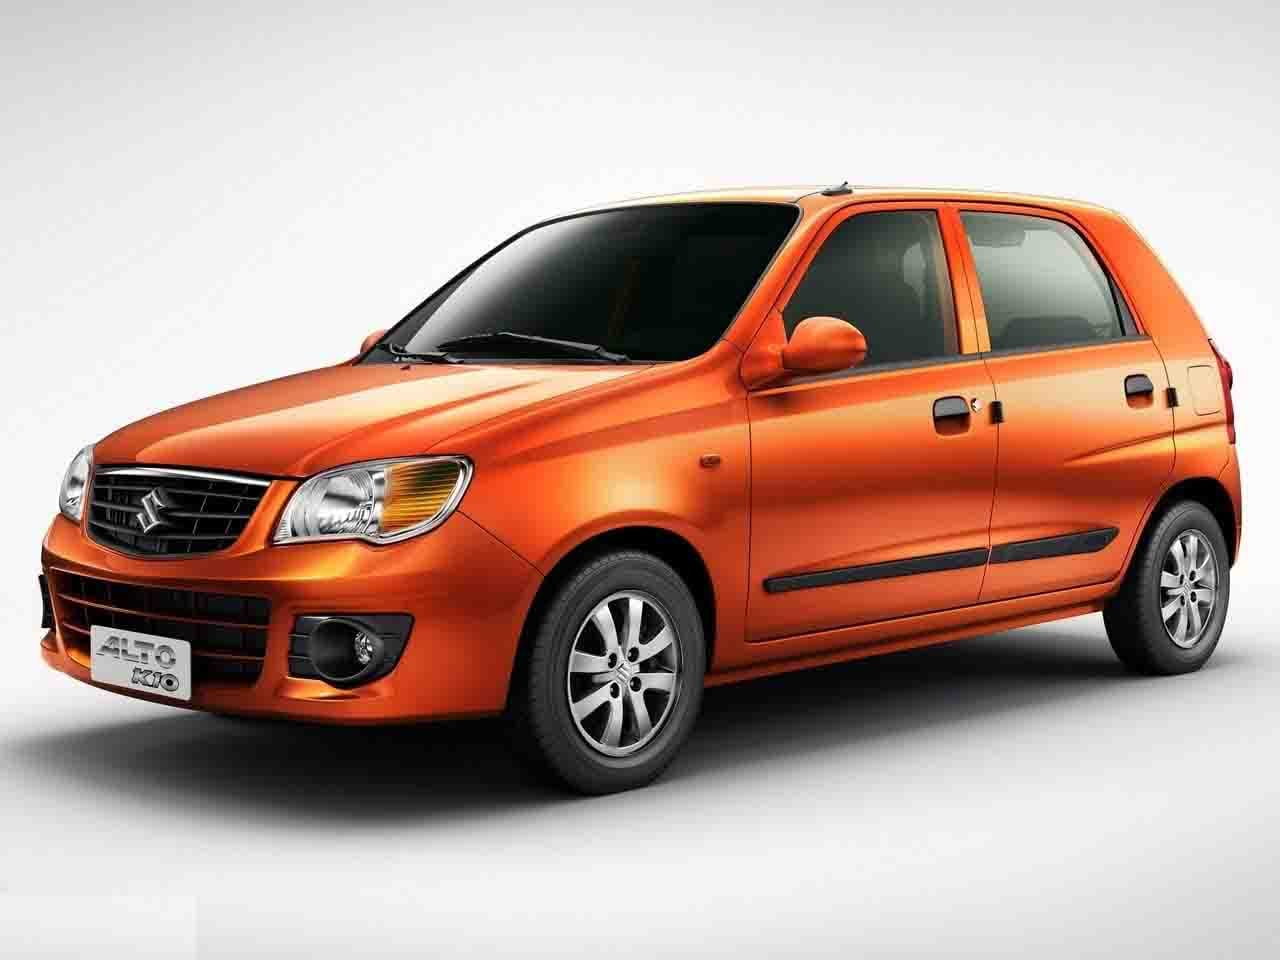 maruti suzuki alto k10 lxi price in india features car